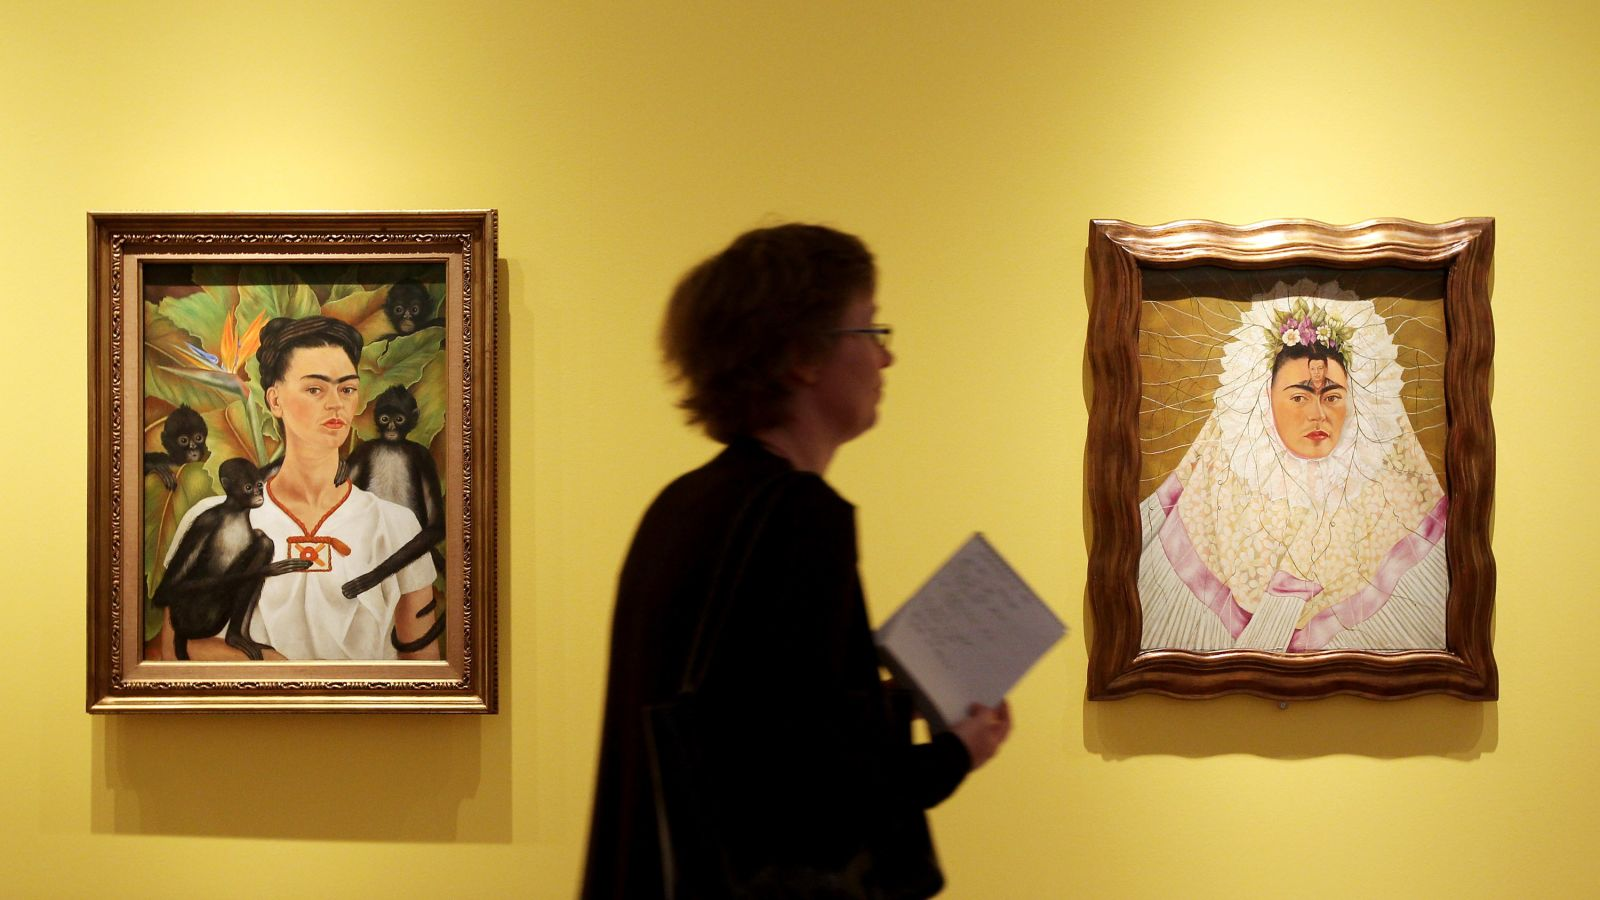 In 1940, her paintings 'The Two Fridas' and 'The Wounded Table' were displayed at the International Surrealism Exhibition, which was held at the Gallery of Mexican Art.